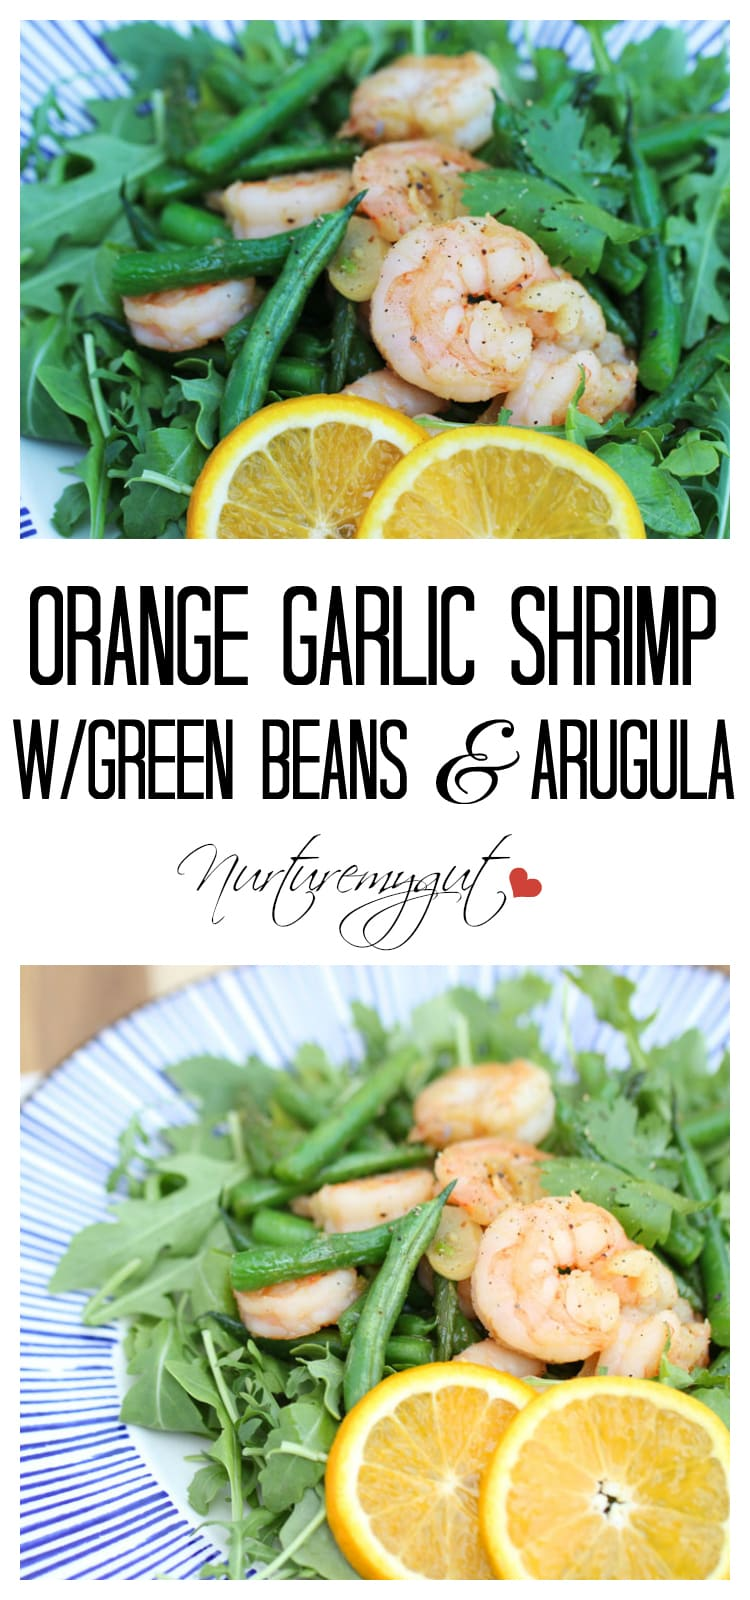 orange garlic shrimp with green beans and arugula